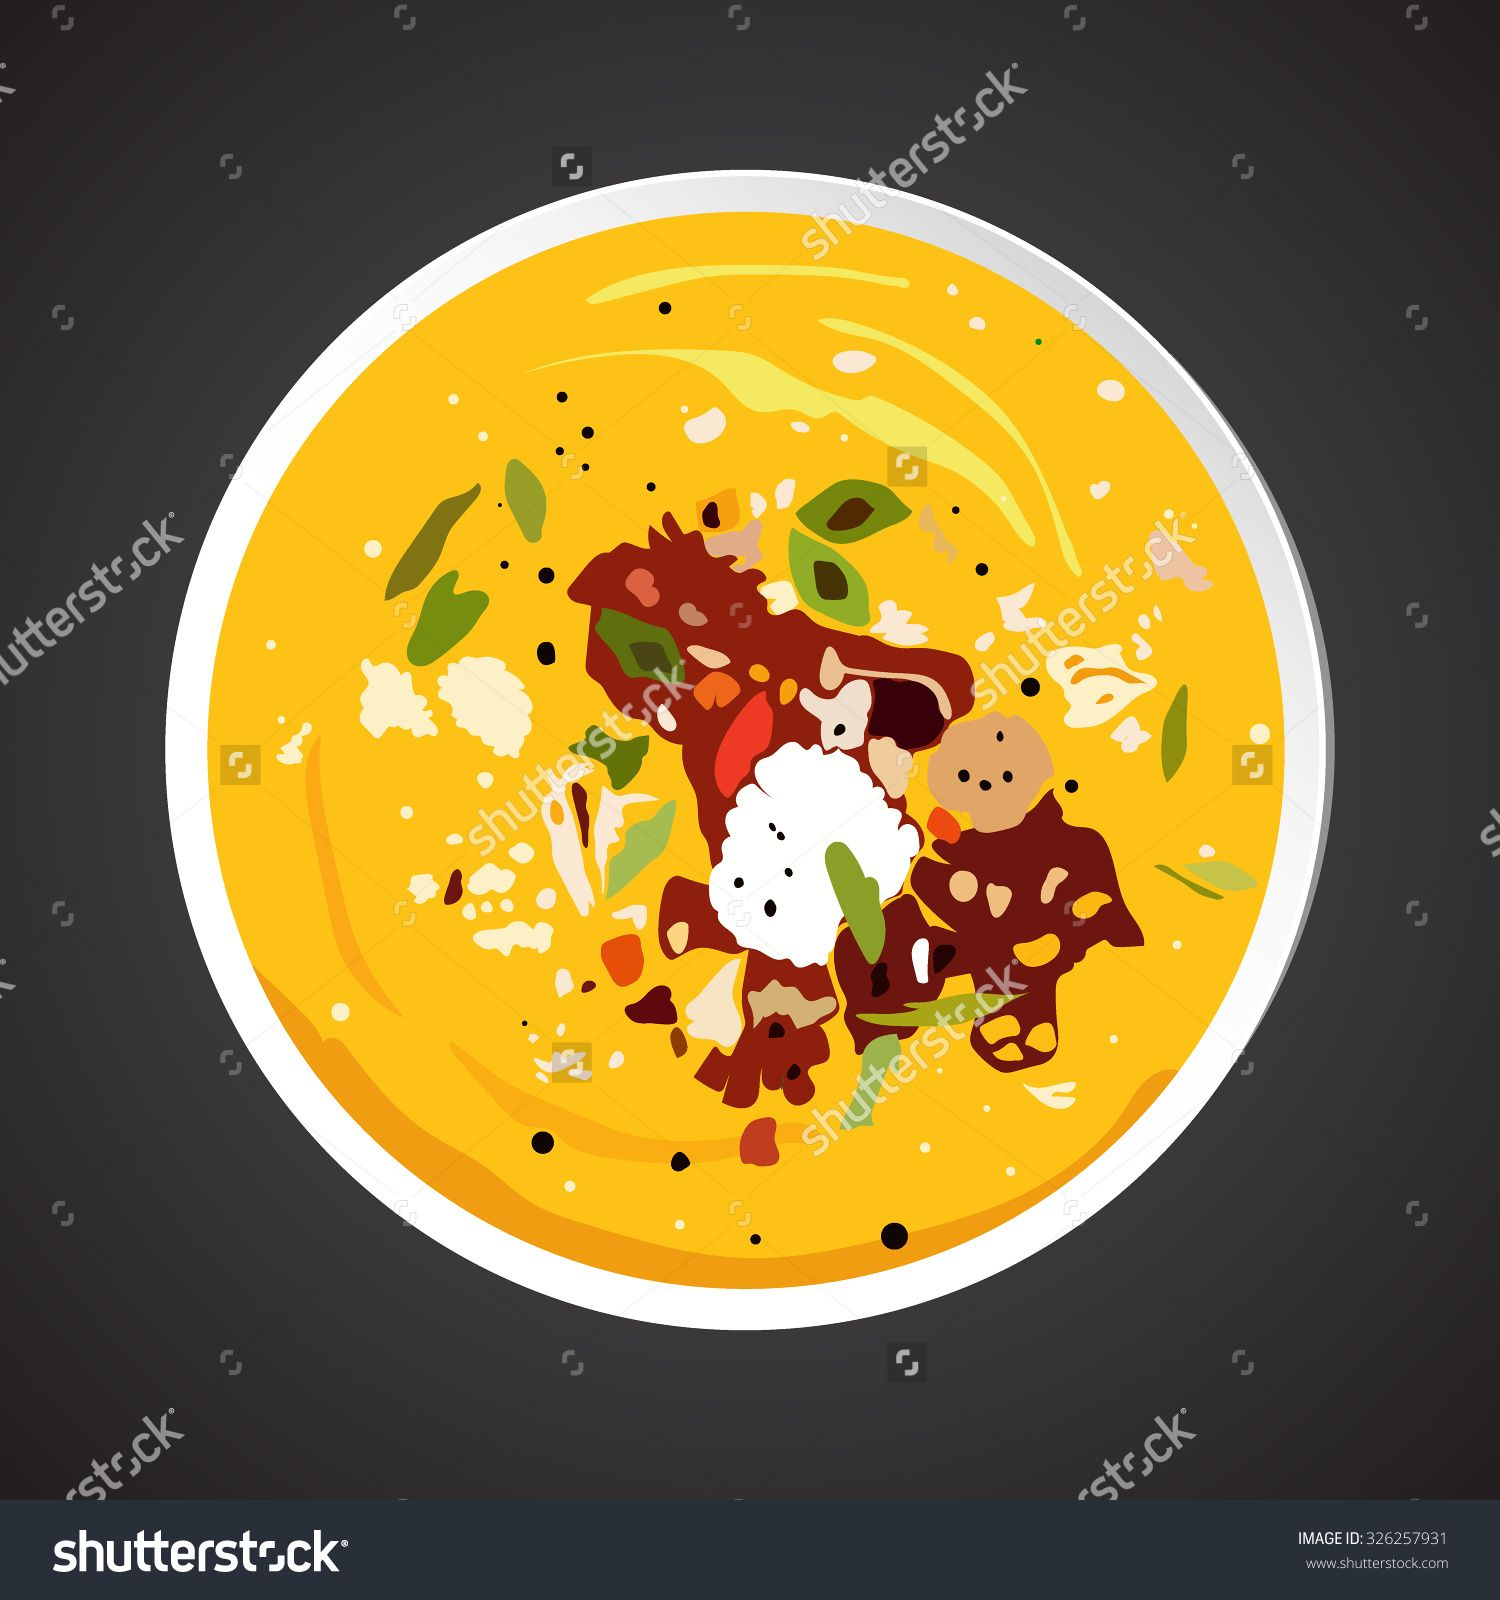 stock-vector-soup-illustration-soup-icon-soup-icon-vector-soup-icon-art-soup-icon-shape-soup-icon-new-soup-326257931.jpg (1500×1600)